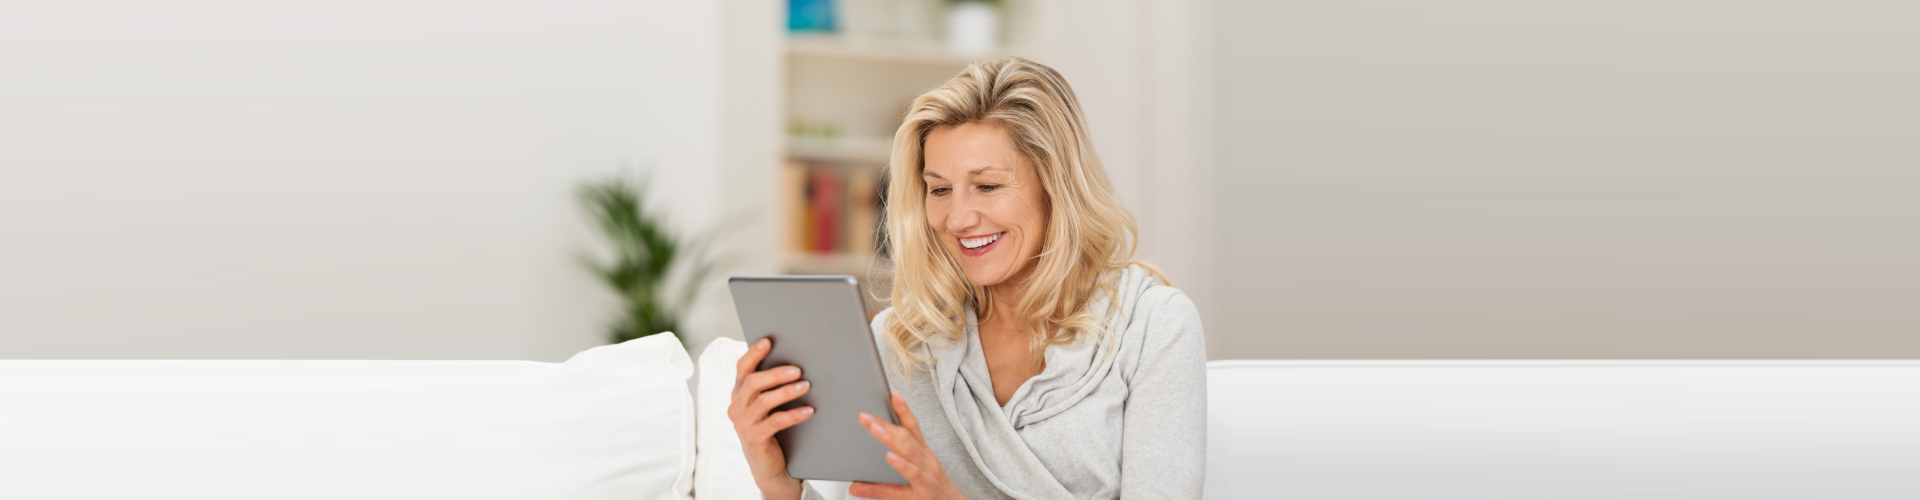 senior woman using a tablet and smiling